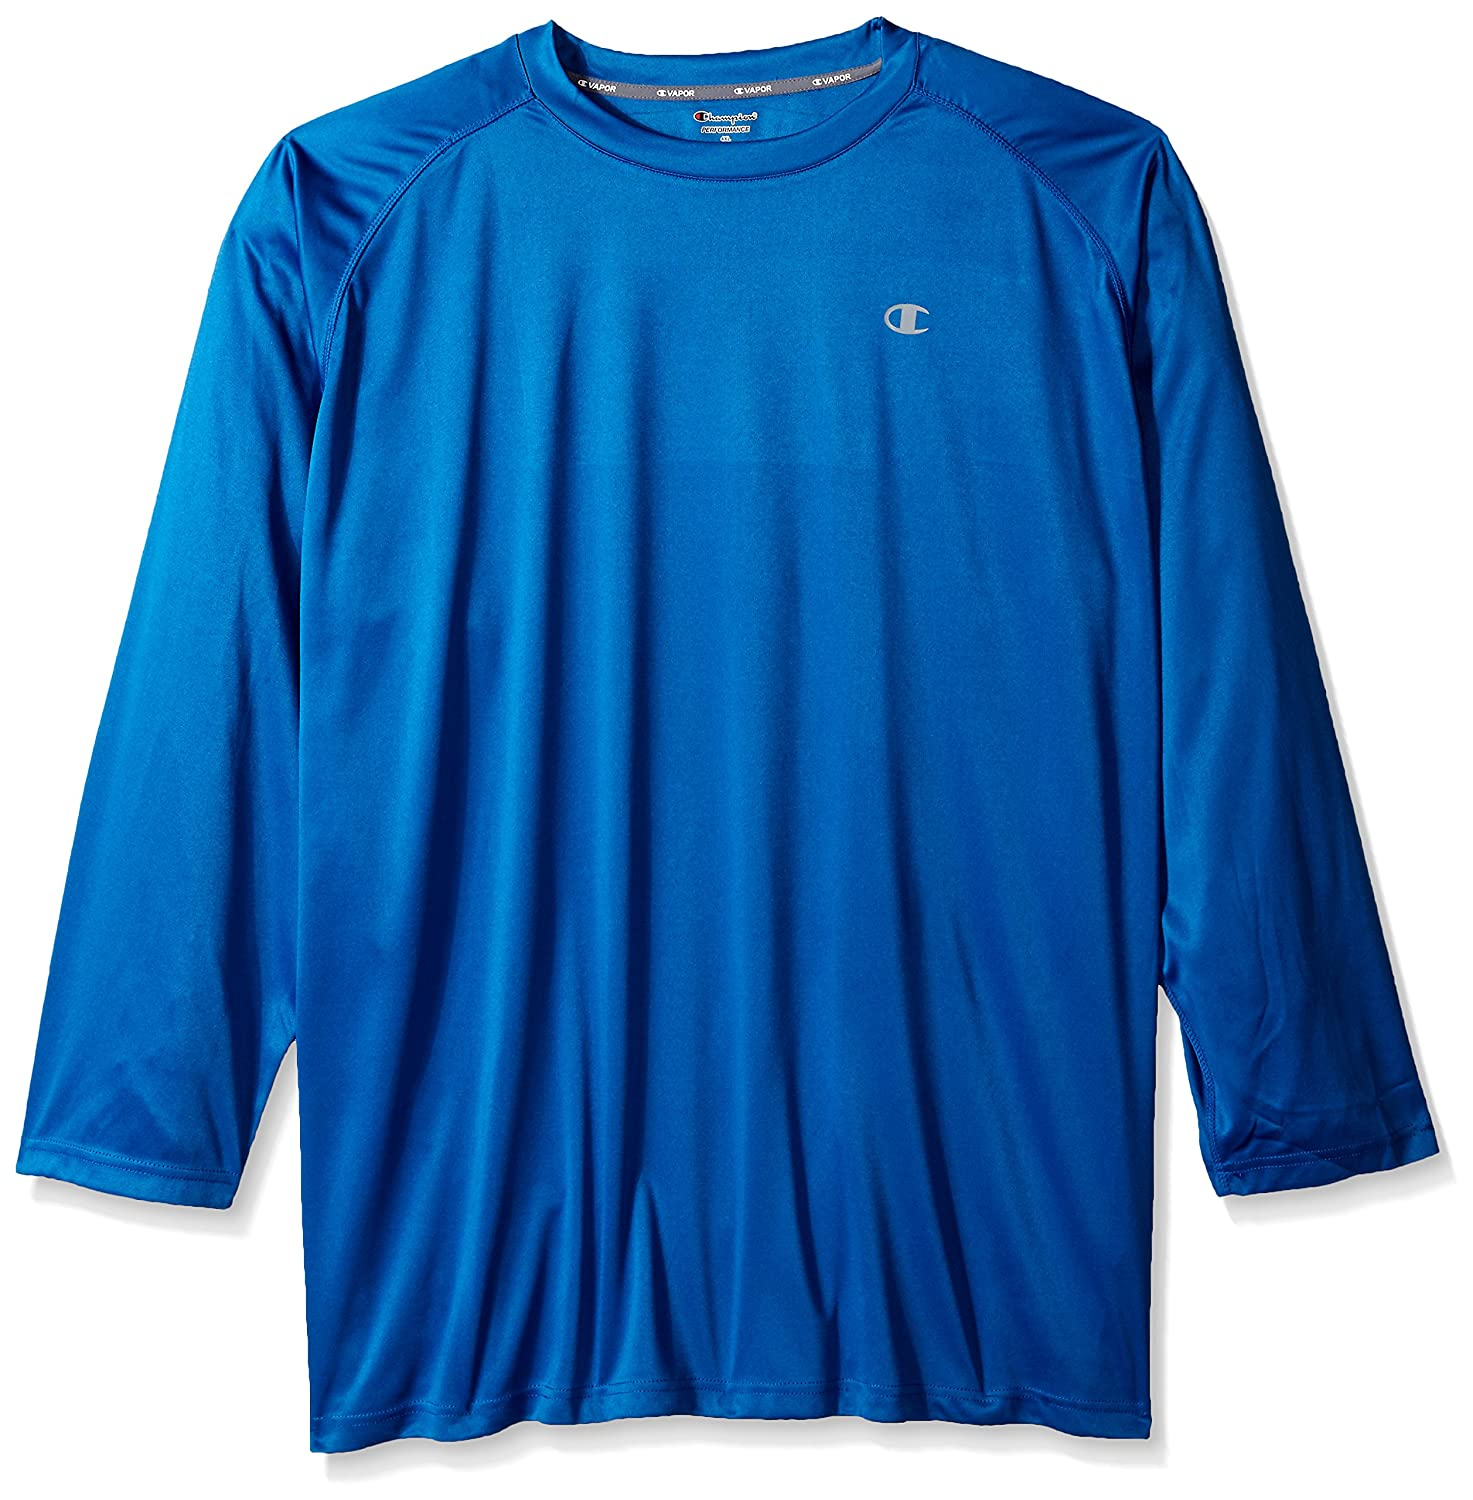 a6961c7a0 Champion long sleeve c-vapor crew with left chest Champion c proudly  displayed along with c-vapor technology on the side. Raglan design offers  added comfort ...